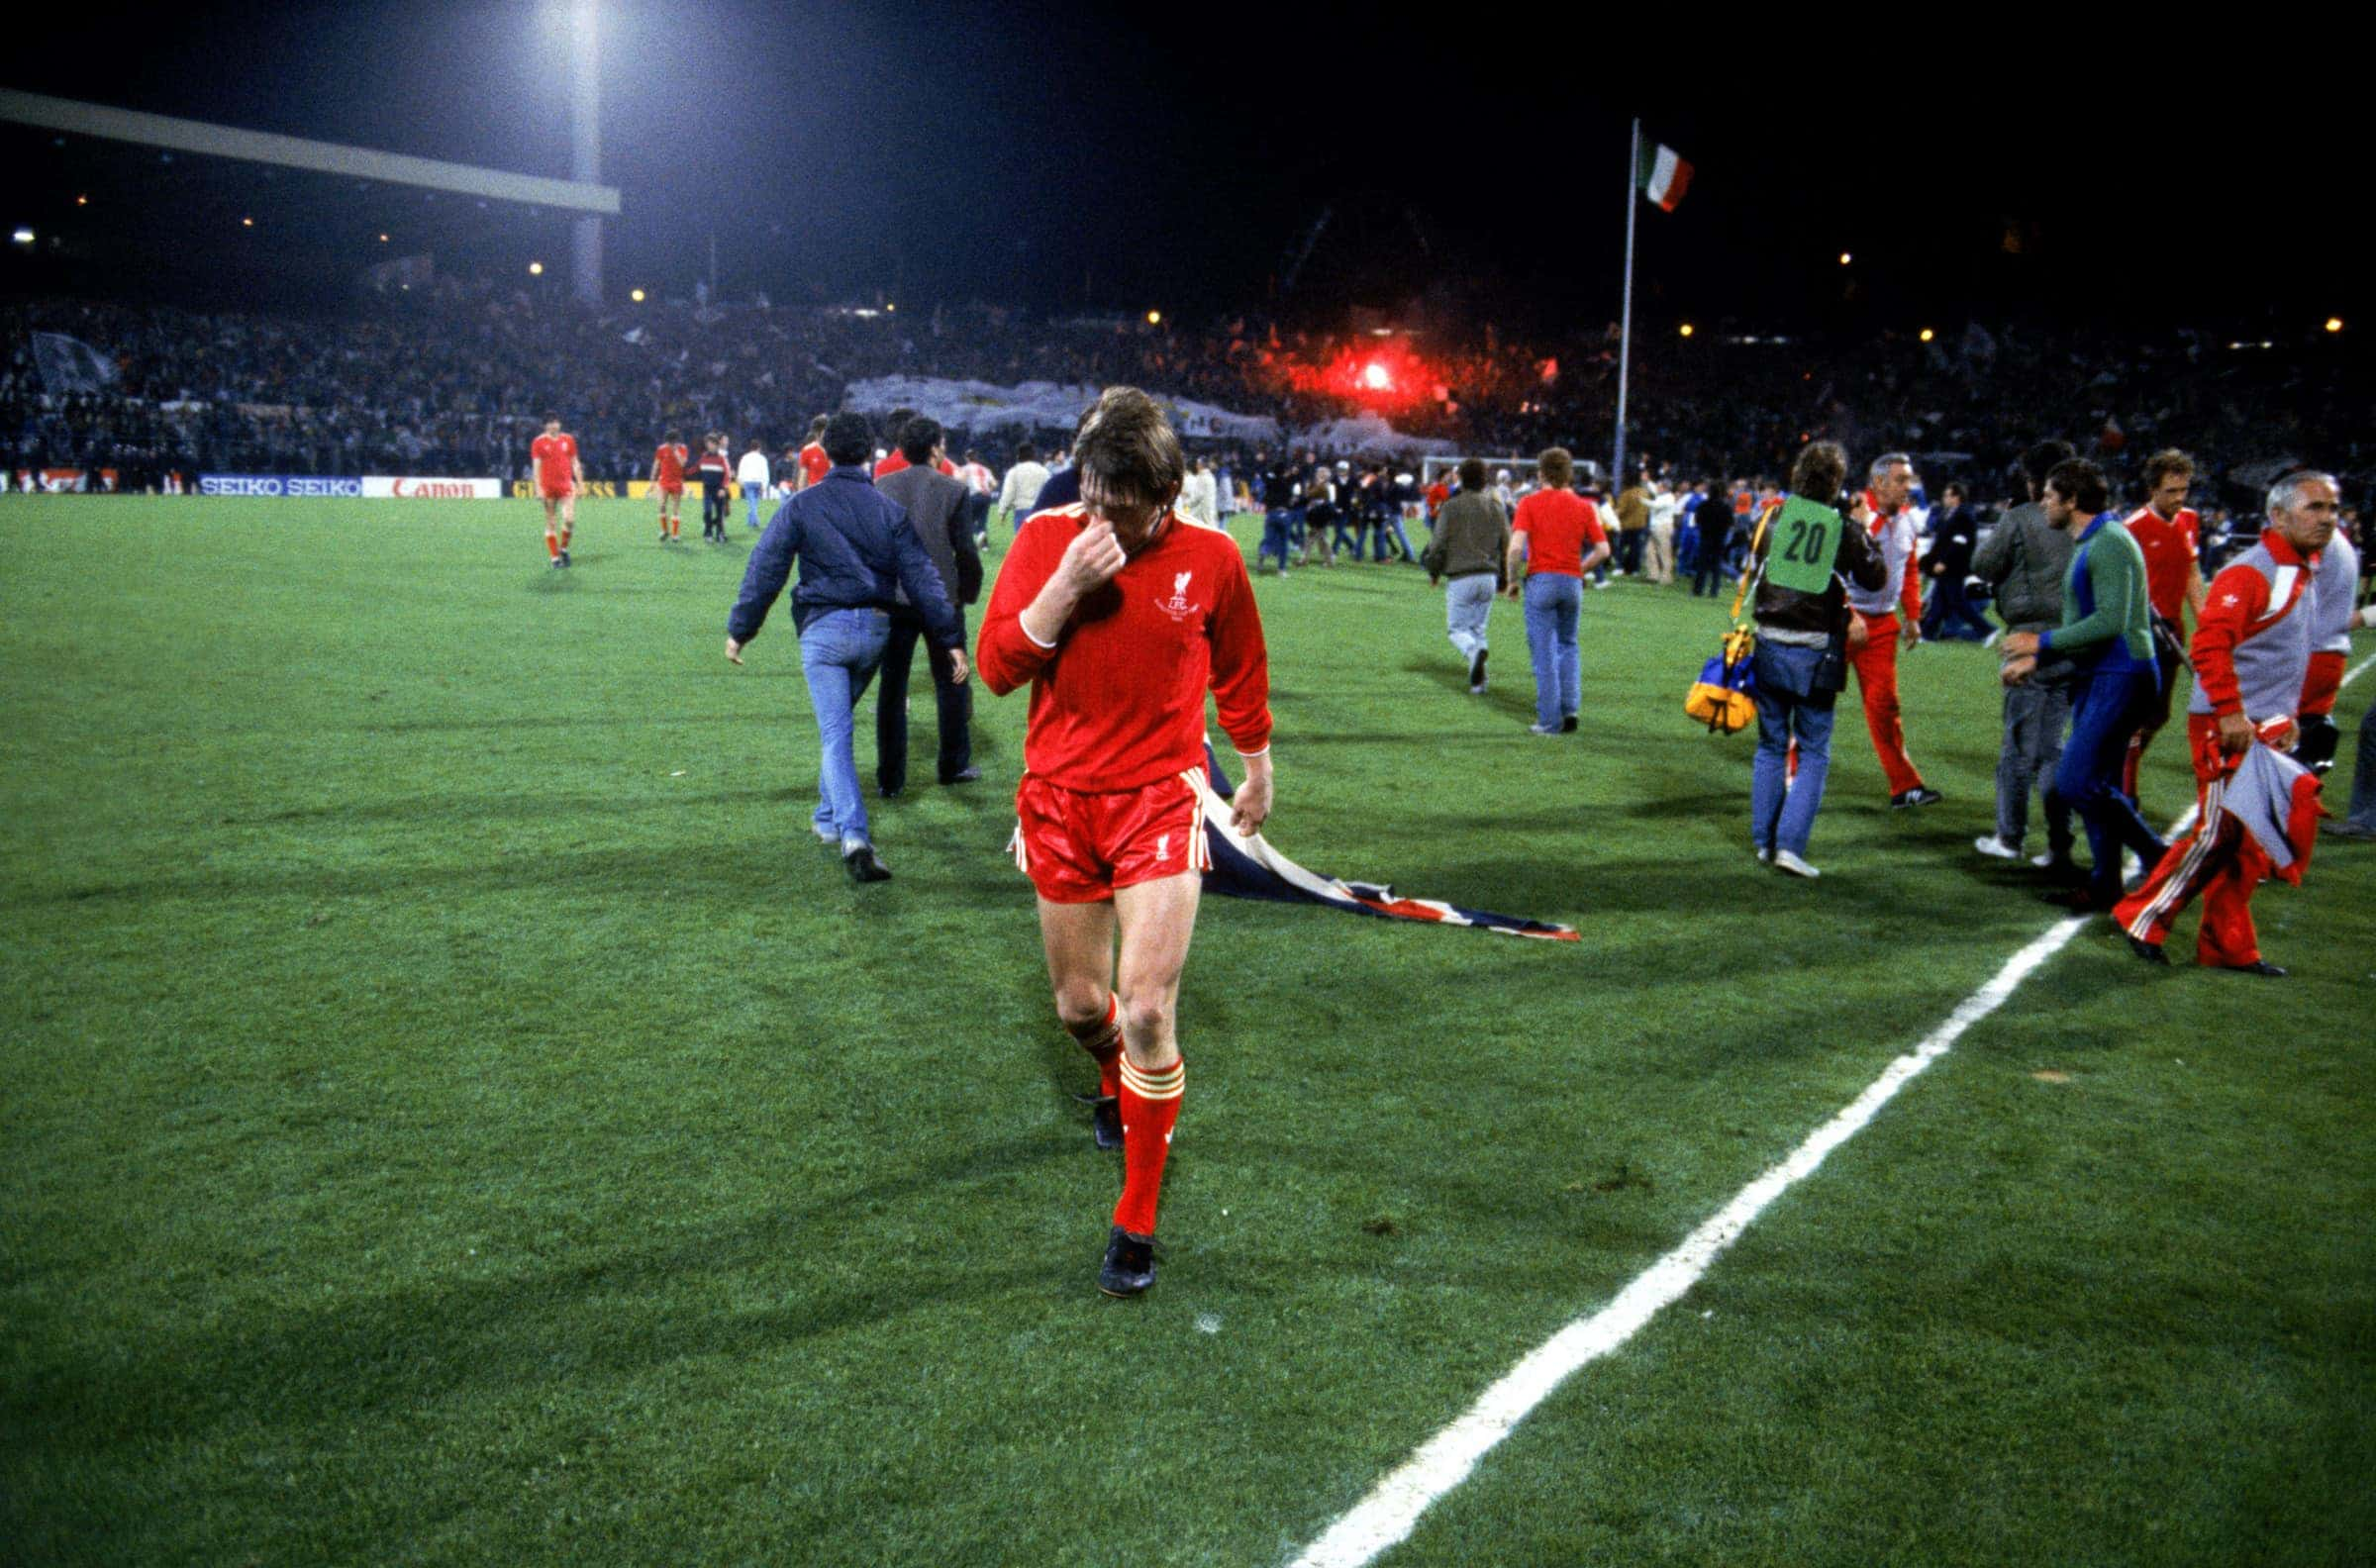 Liverpool's Kenny Dalglish walks off the pitch after his team's 1-0 defeat